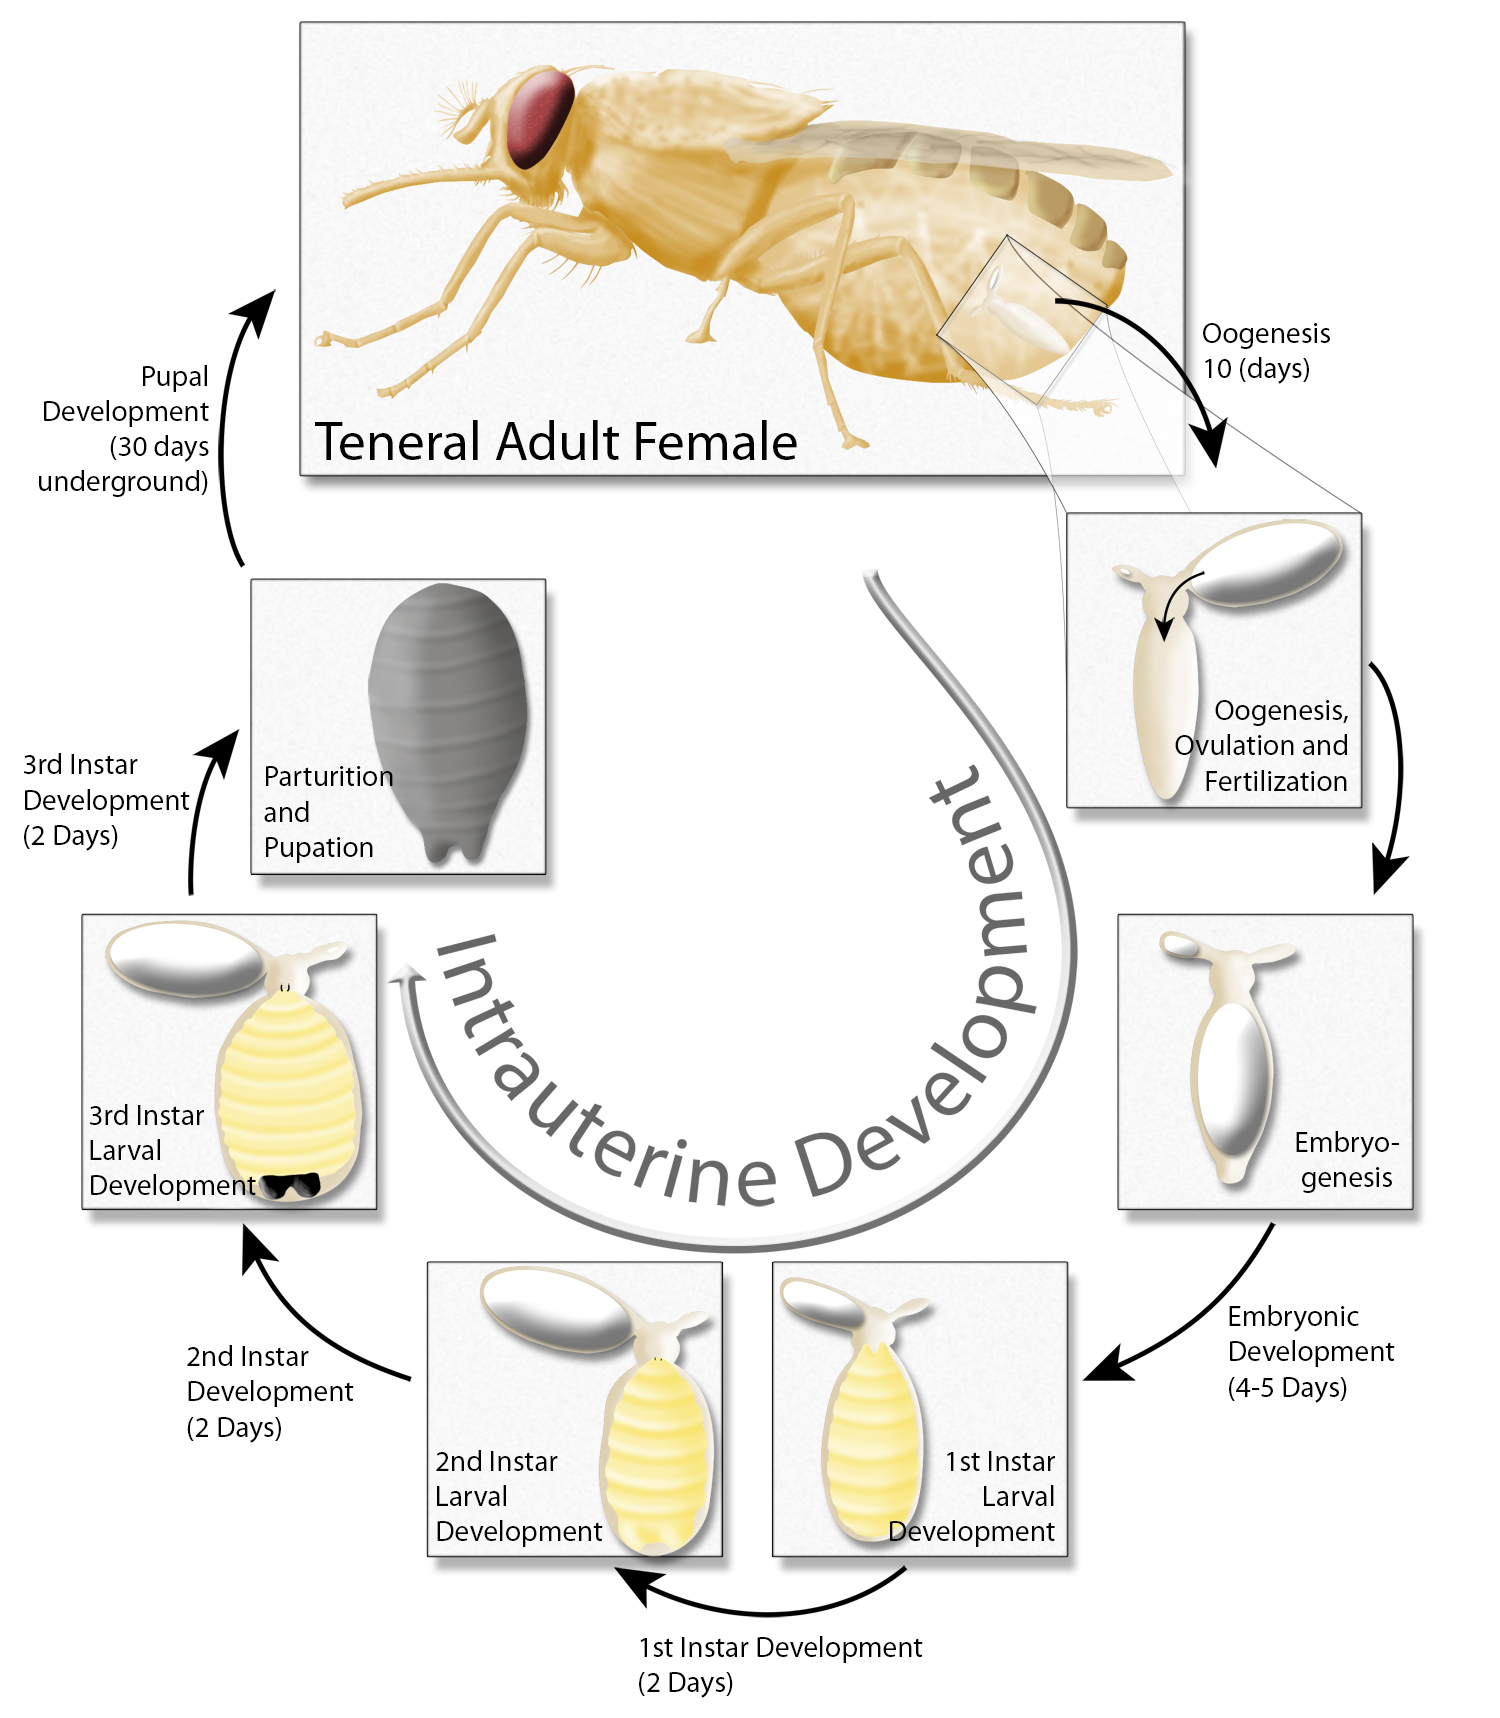 Tsetse reproductive cycle and intrauterine larval development